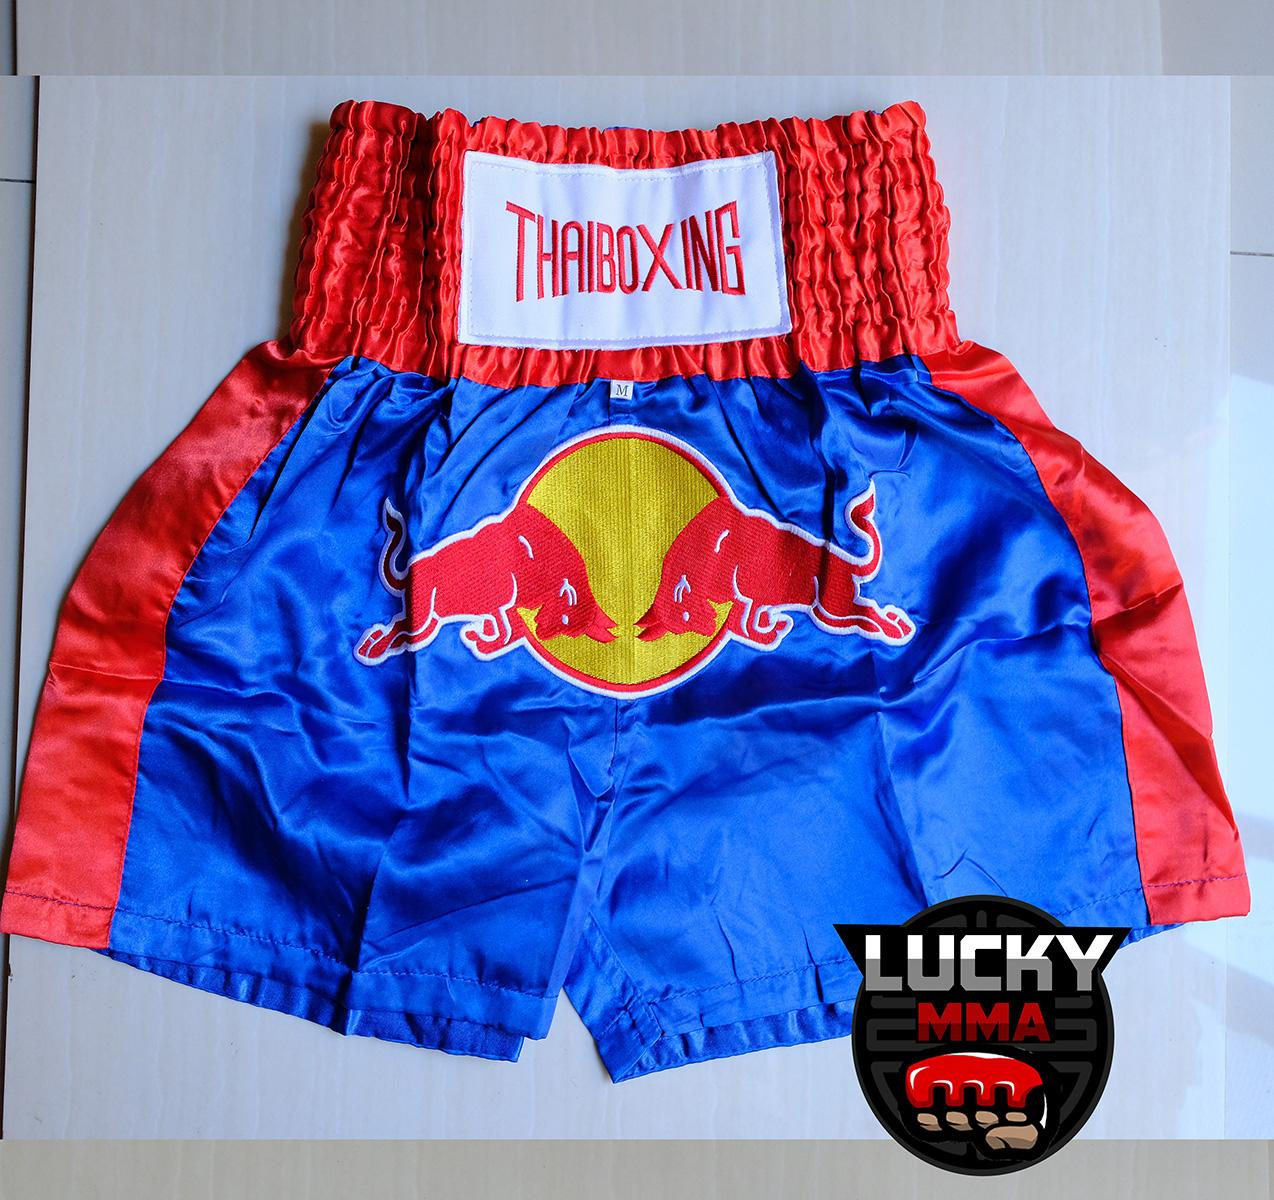 Thaiboxing Redbull Muay Thai Shorts Blue image